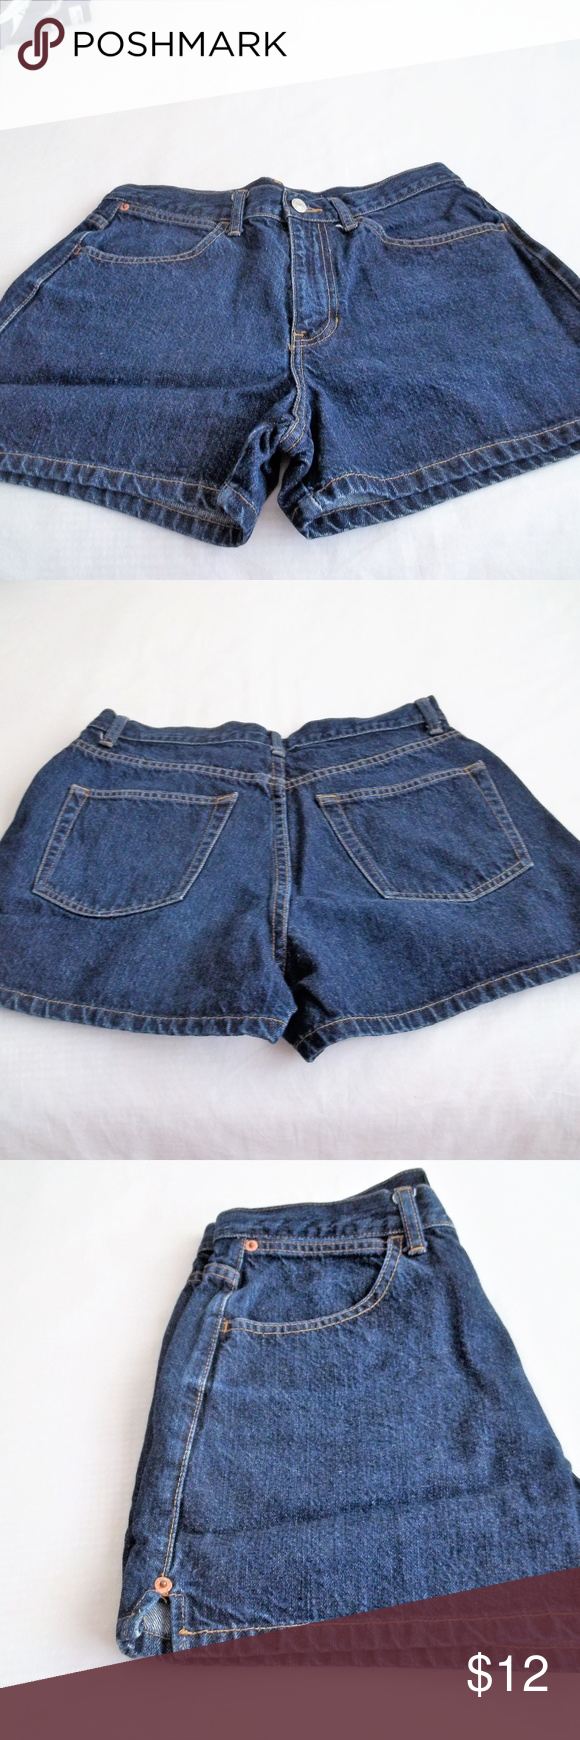 a9edceb226c GAP Denim Shorts GAP Denim Shorts. Size 8